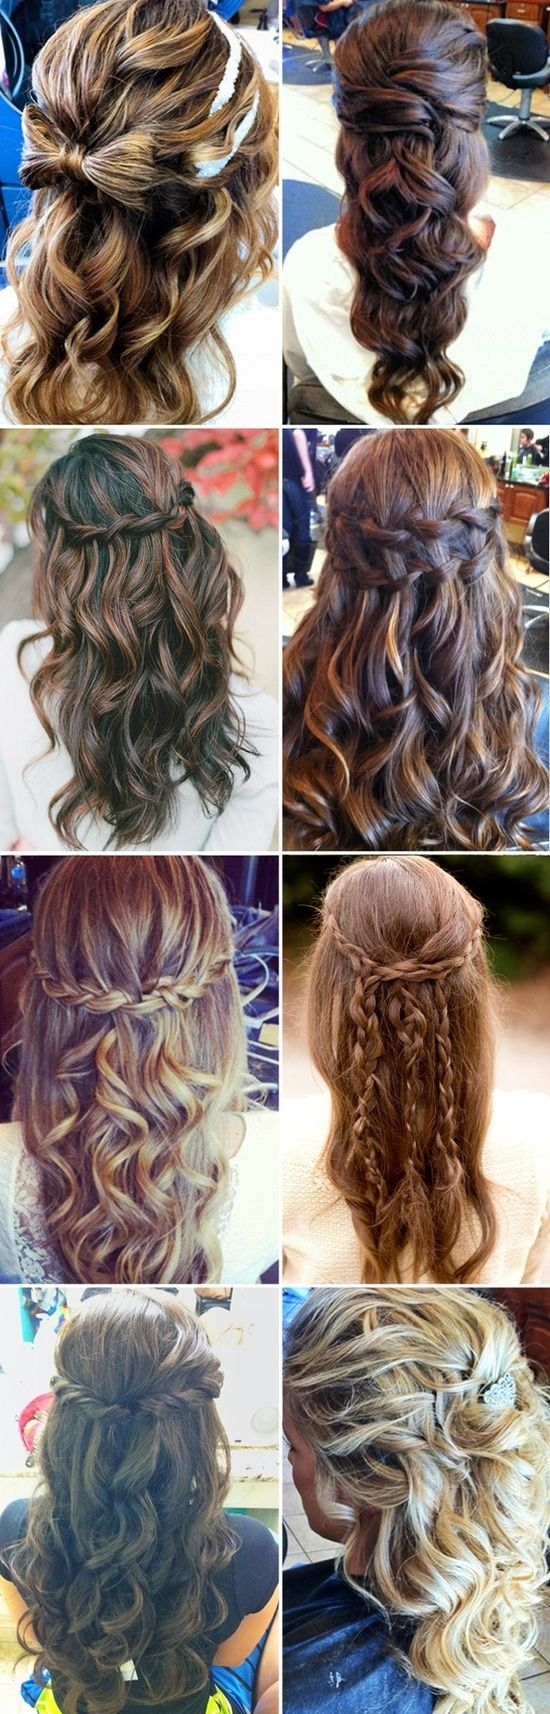 Love the top left hairstyle